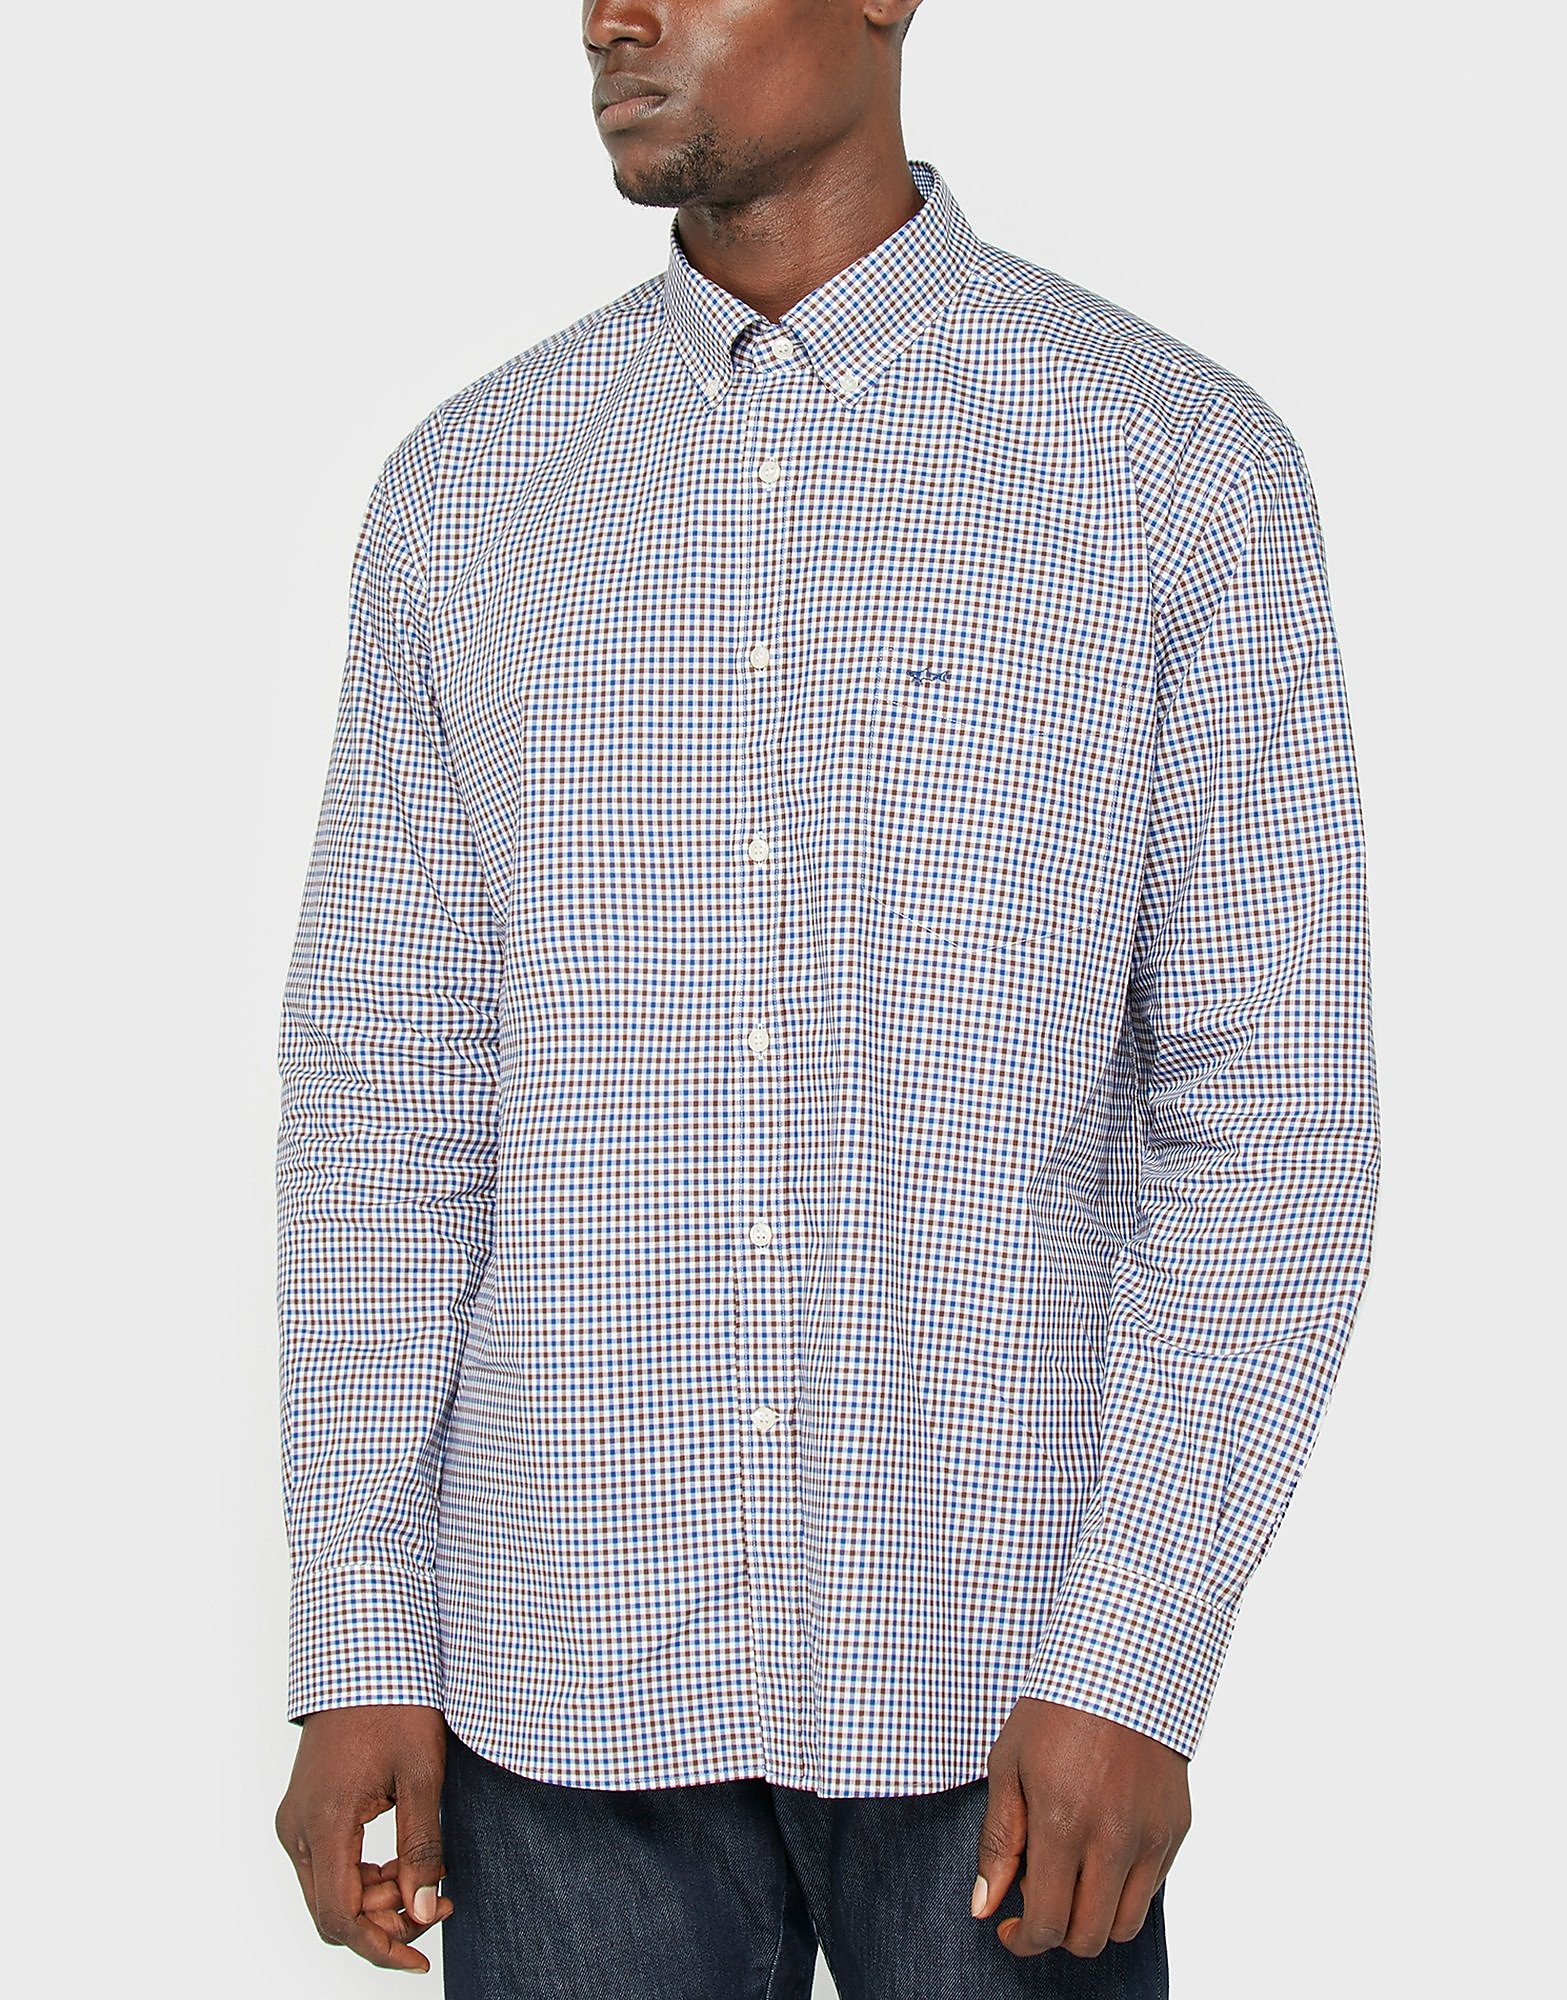 Paul and Shark Gingham Shirt